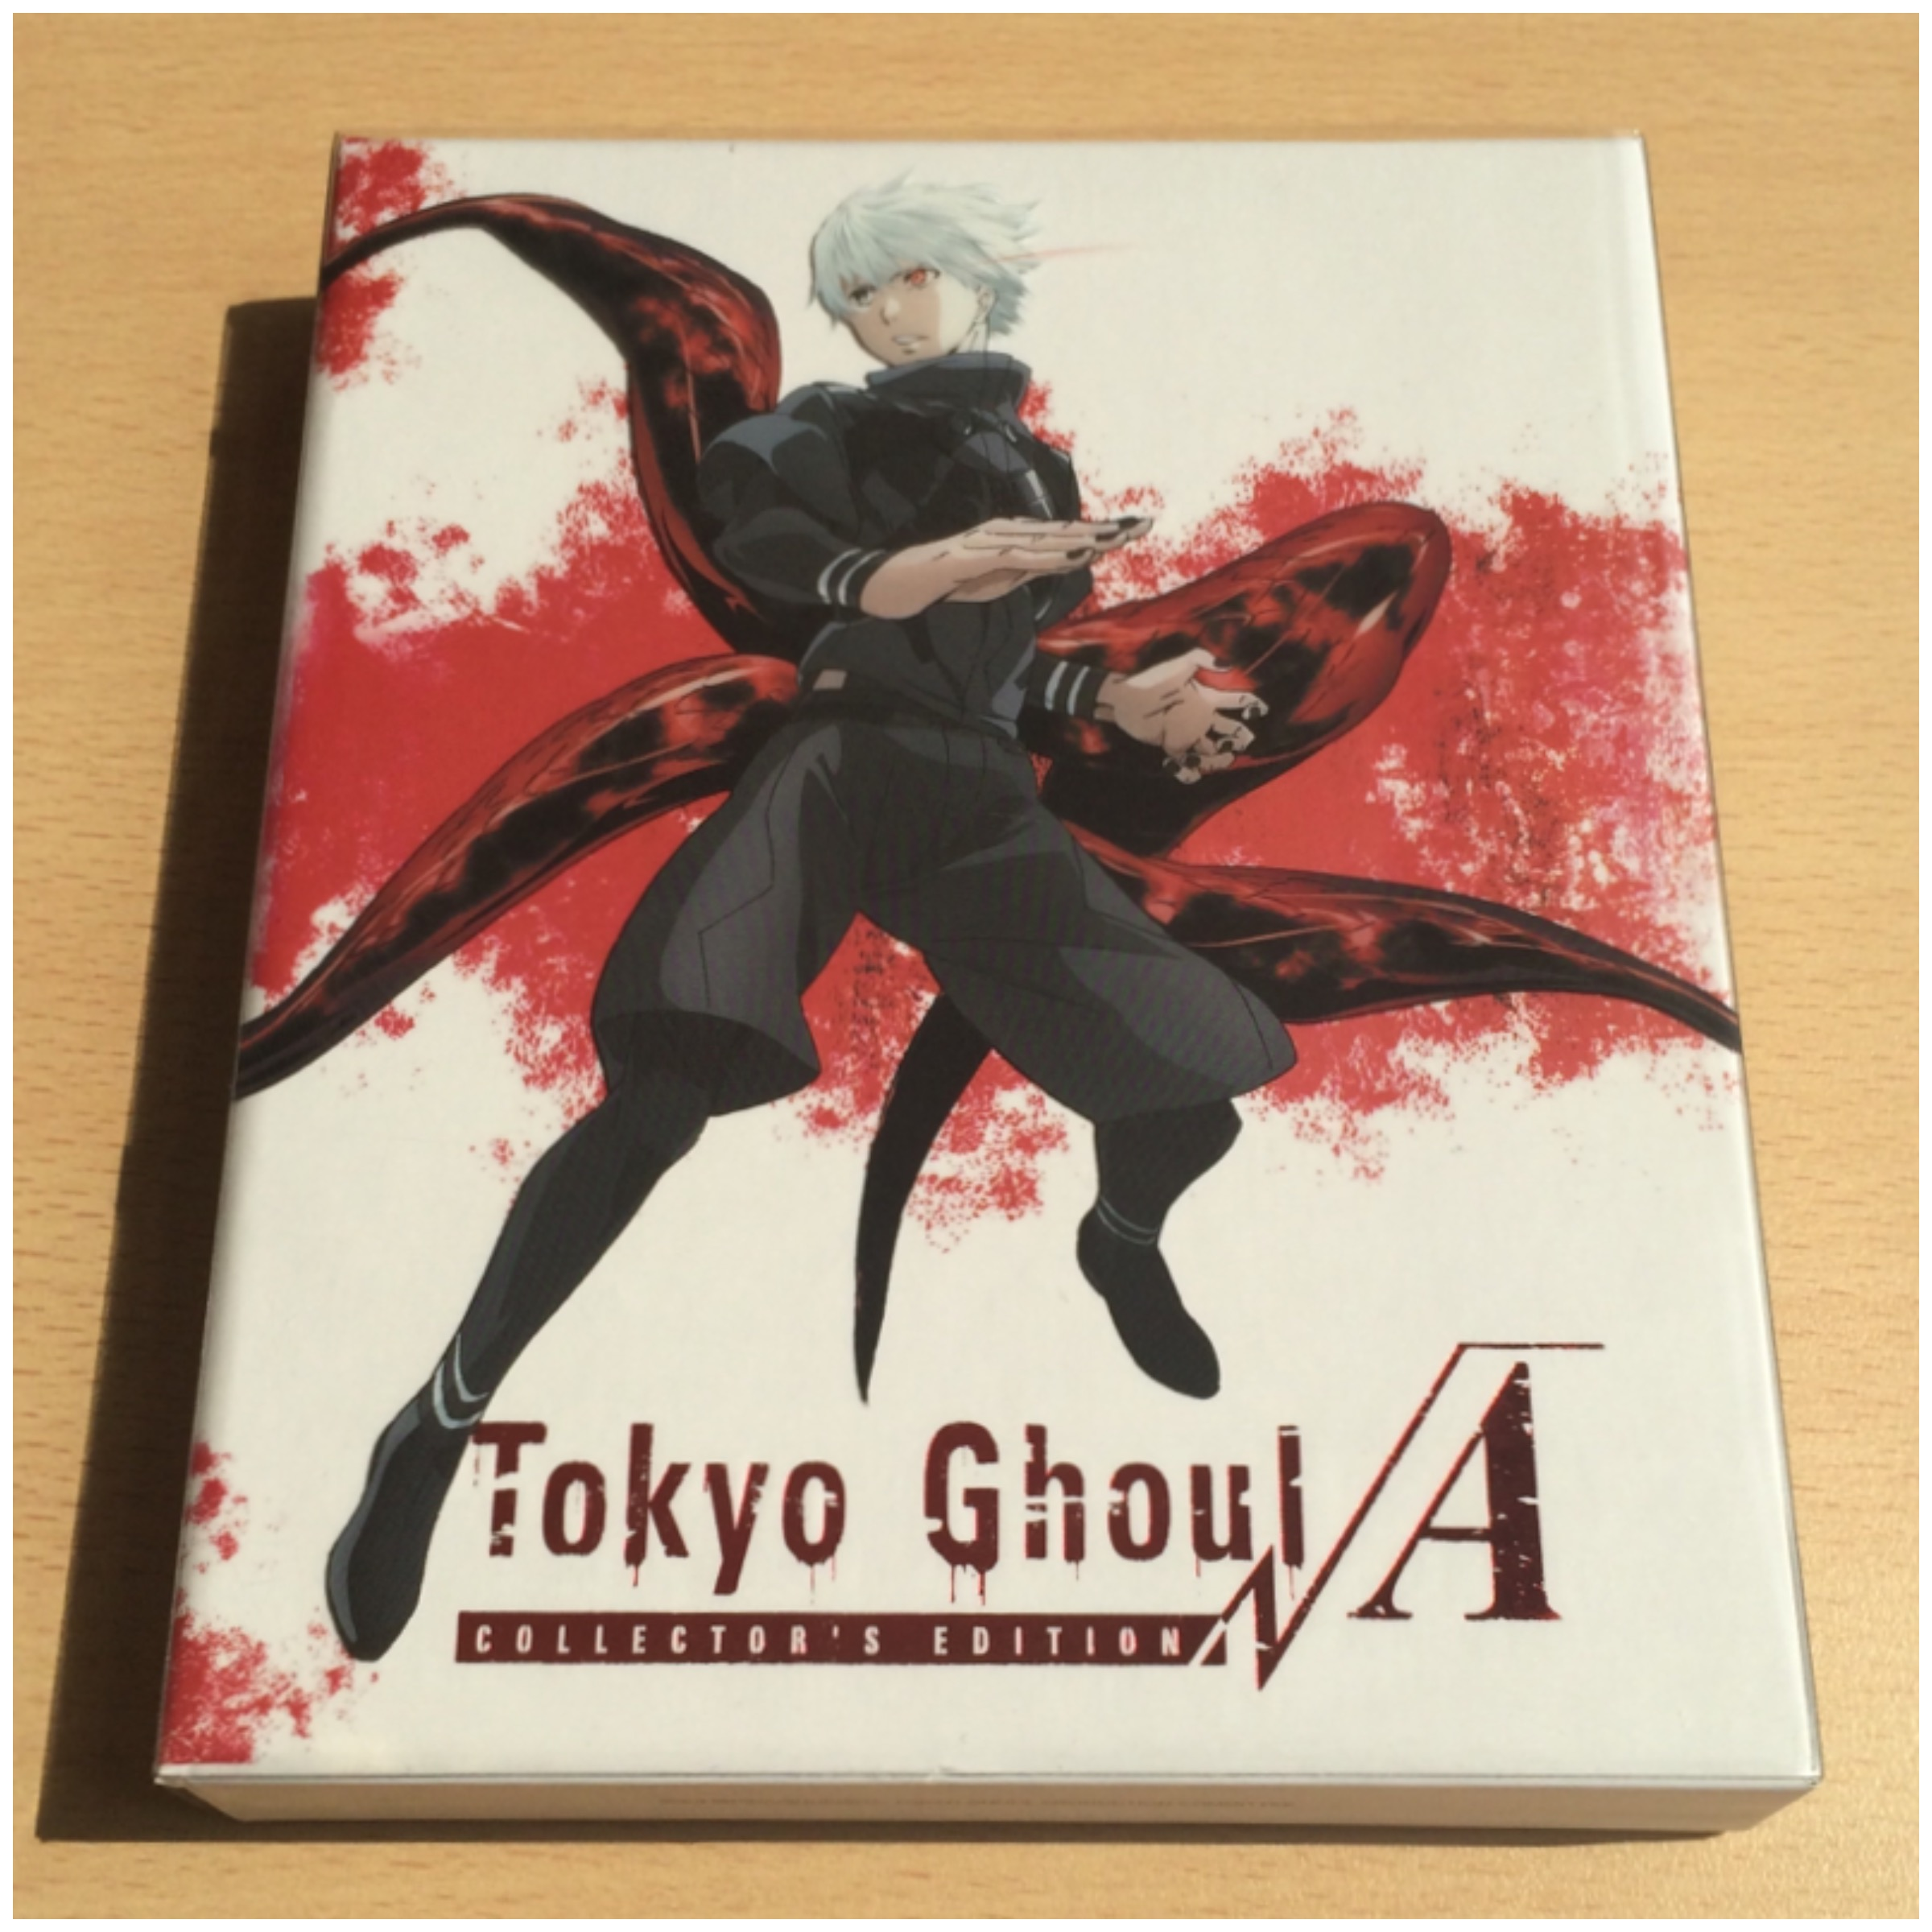 Unboxing] Tokyo Ghoul √A – All the Anime